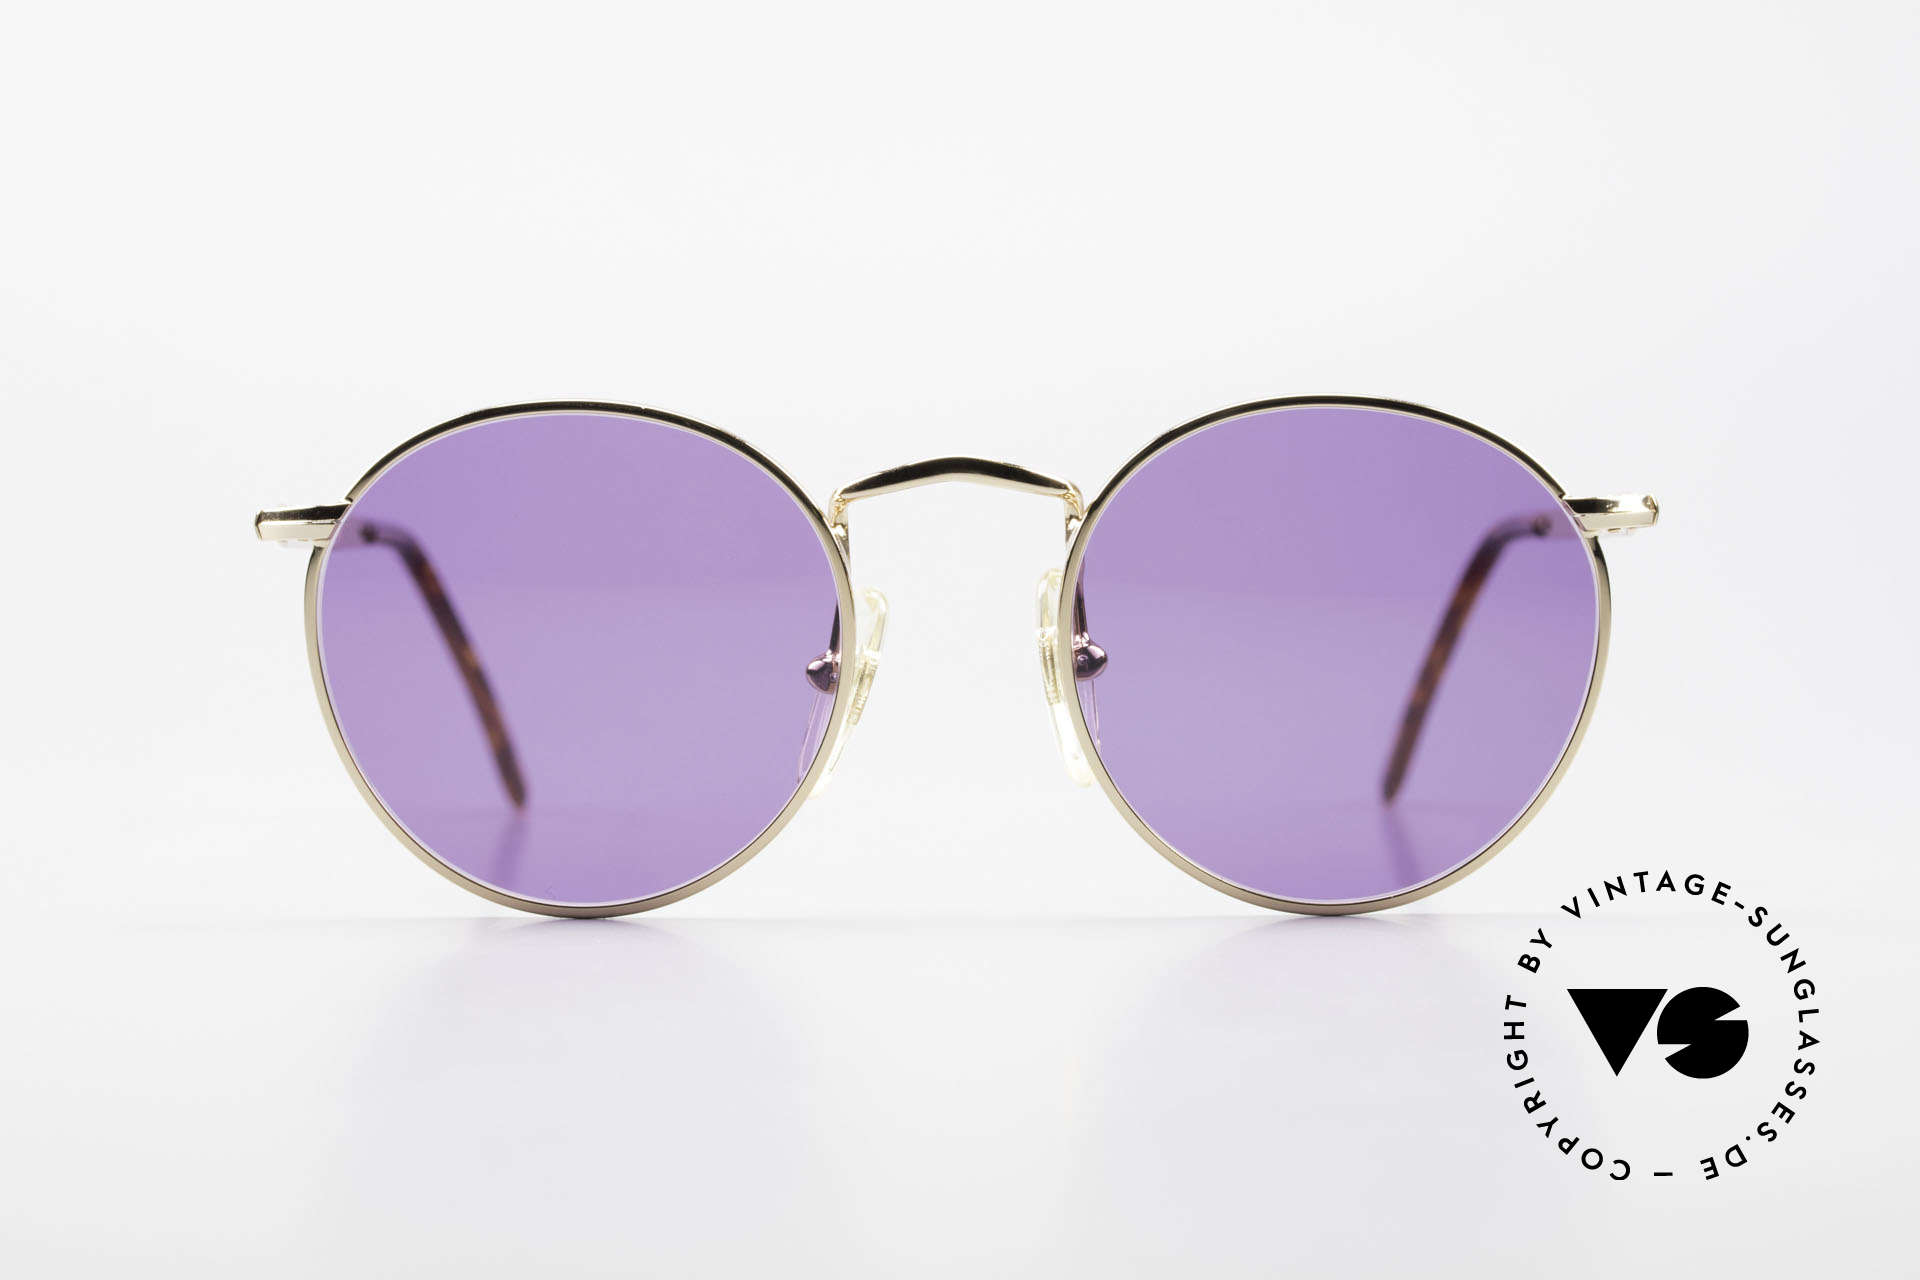 John Lennon - The Dreamer Extra Small Panto Sunglasses, mod. 'The Dreamer': panto sunglasses in 47mm size (XS), Made for Men and Women